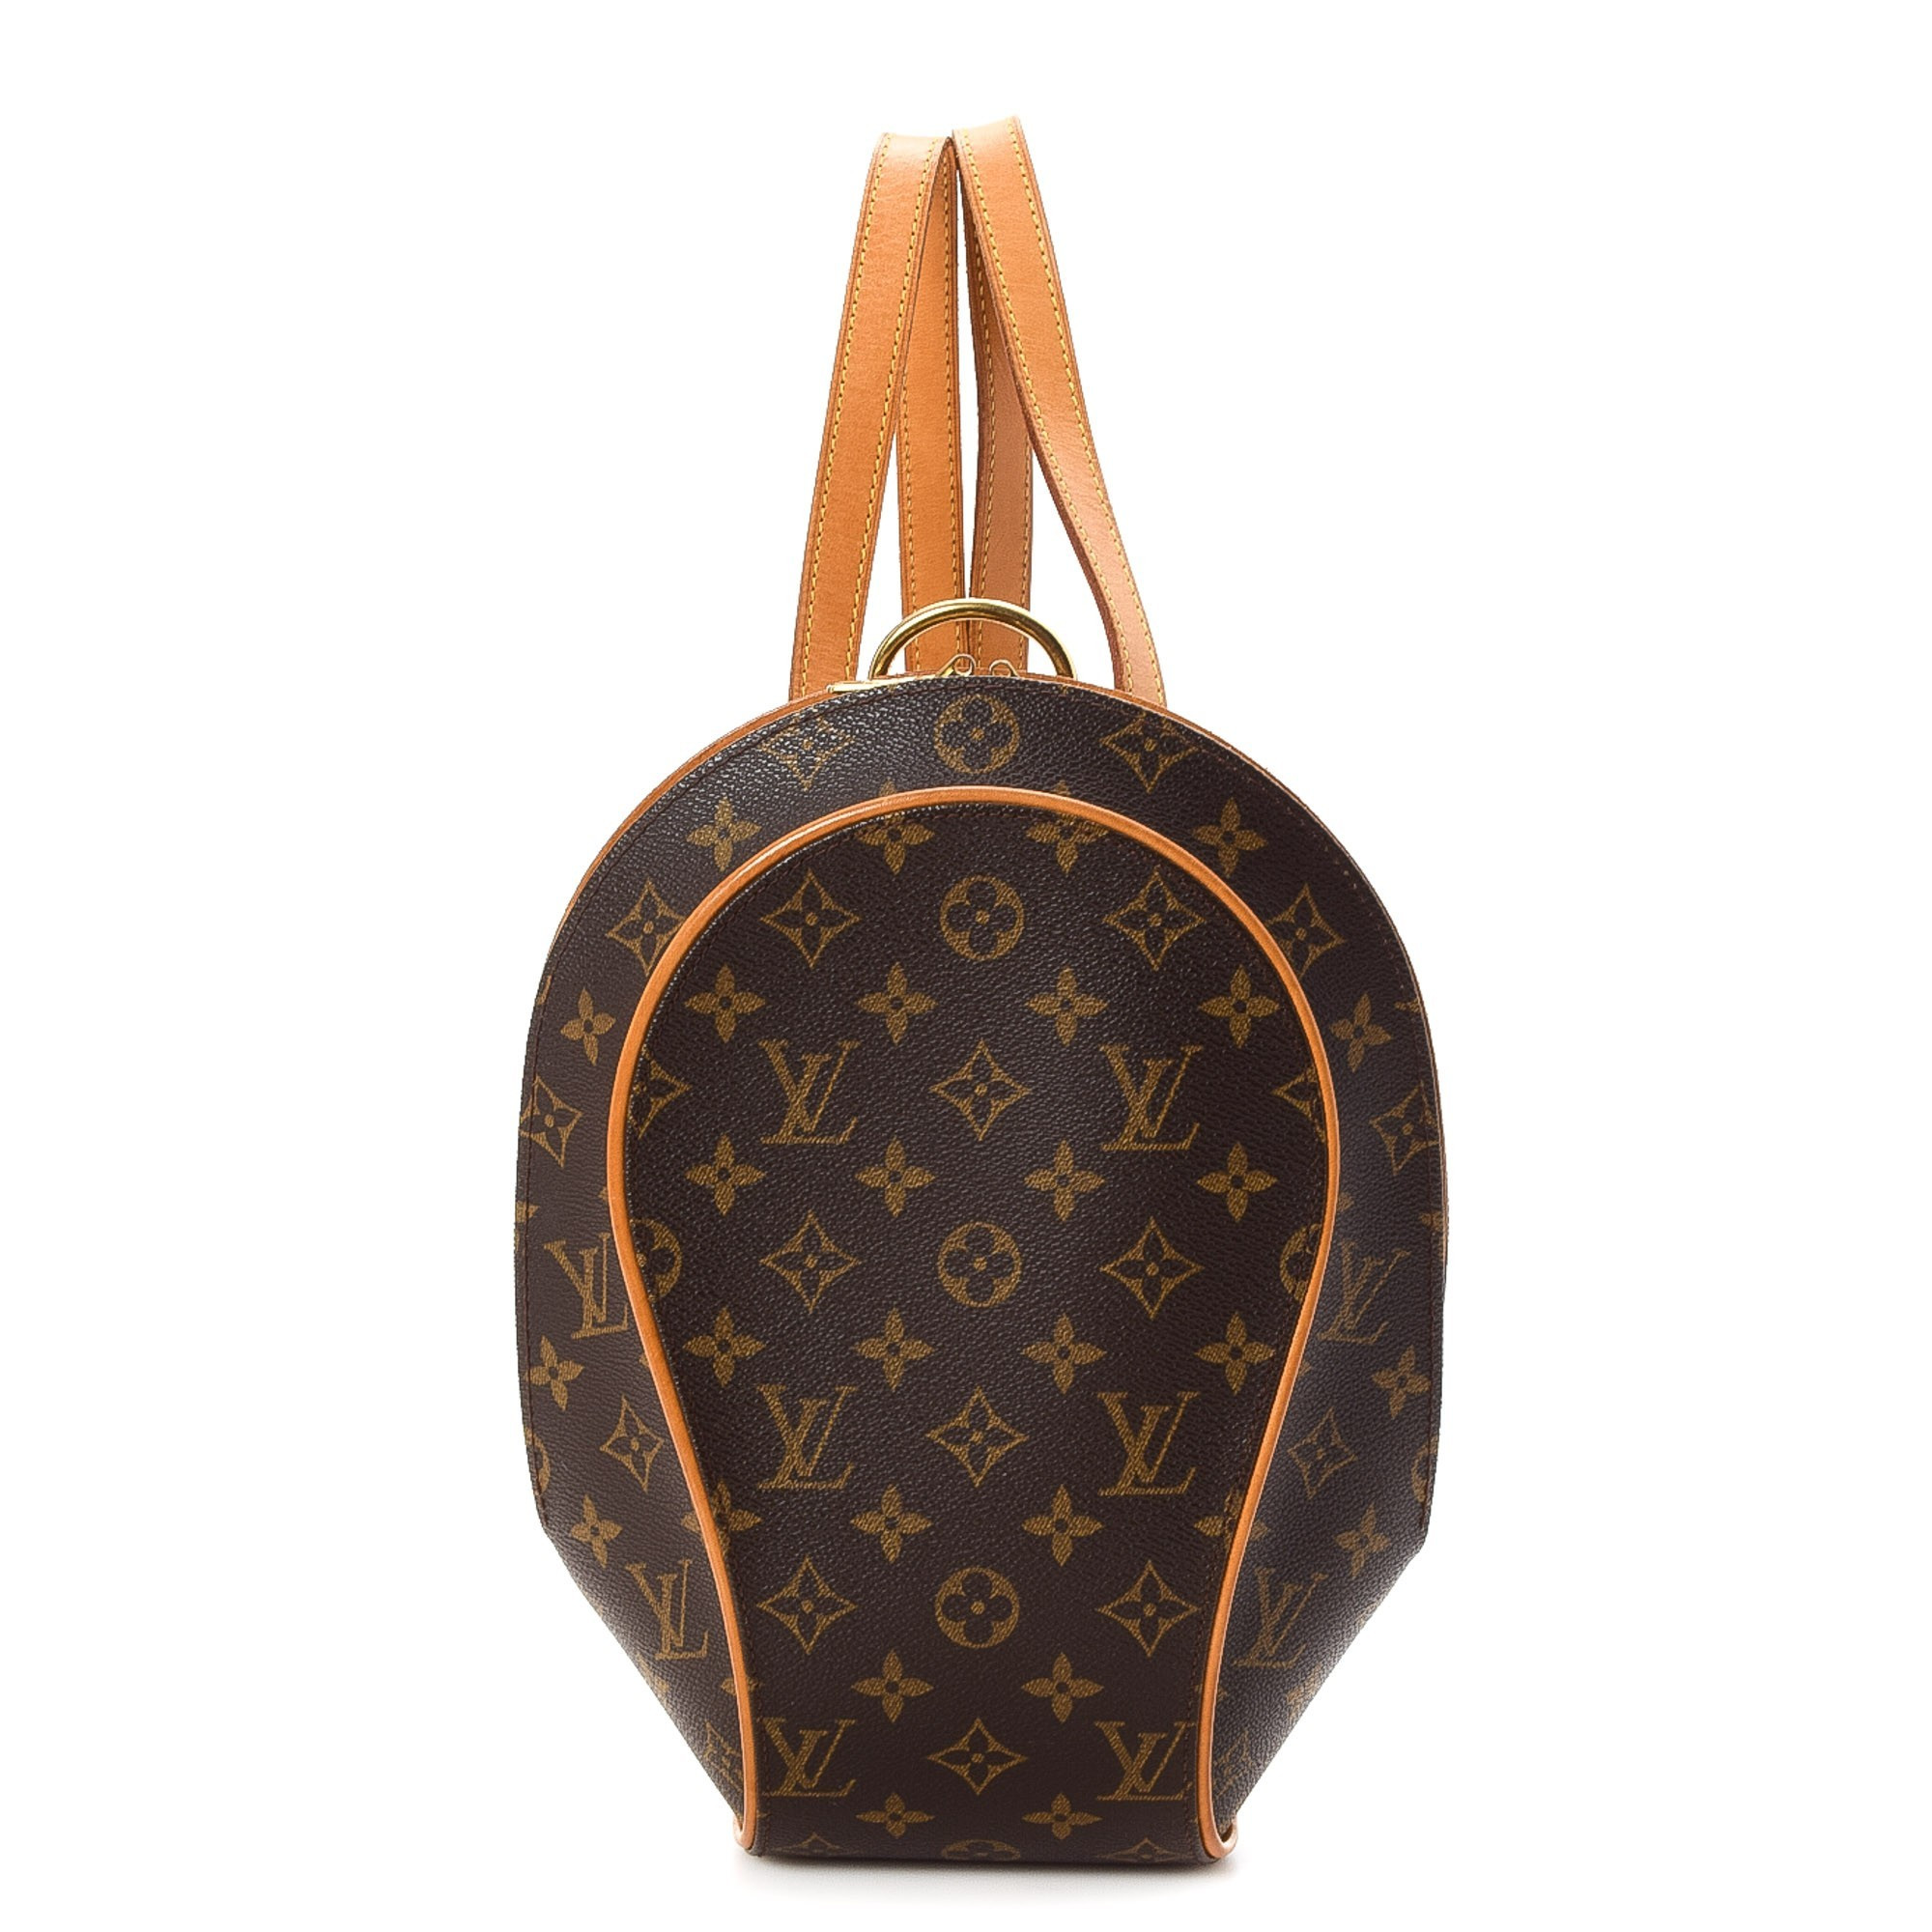 Sac A Dos Louis Vuitton Michael : Buy brown coated canvas louis vuitton backpack at lxr co